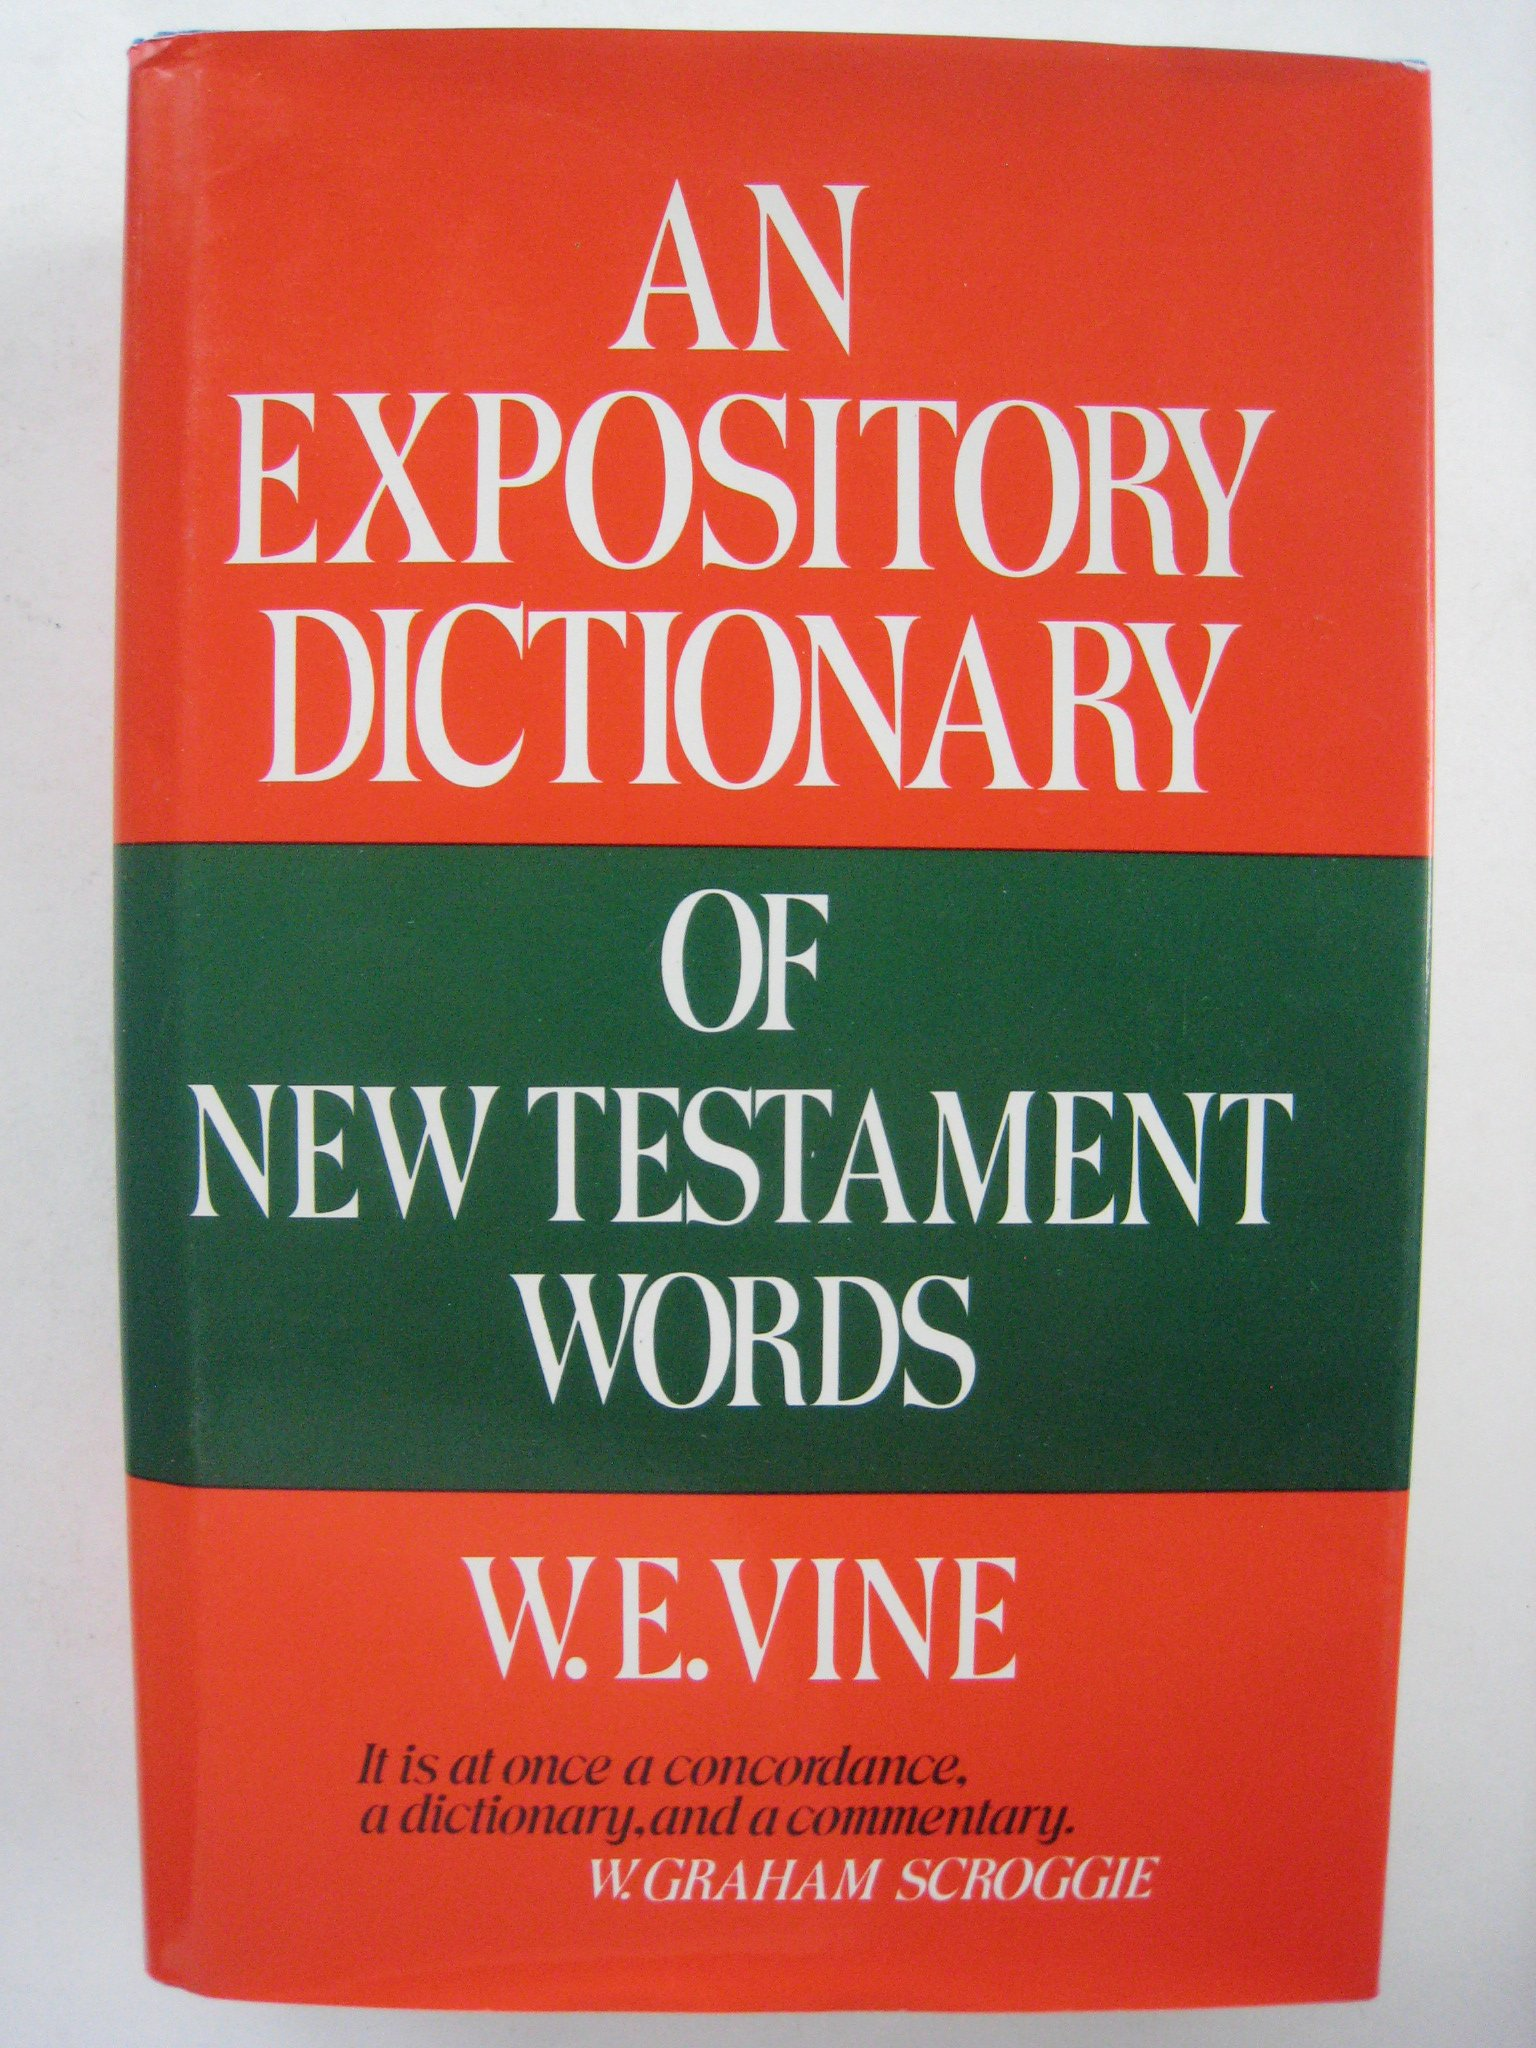 An expository dictionary of new testament words with their an expository dictionary of new testament words with their precise meanings for english readers w e vine 9780800700898 amazon books fandeluxe PDF